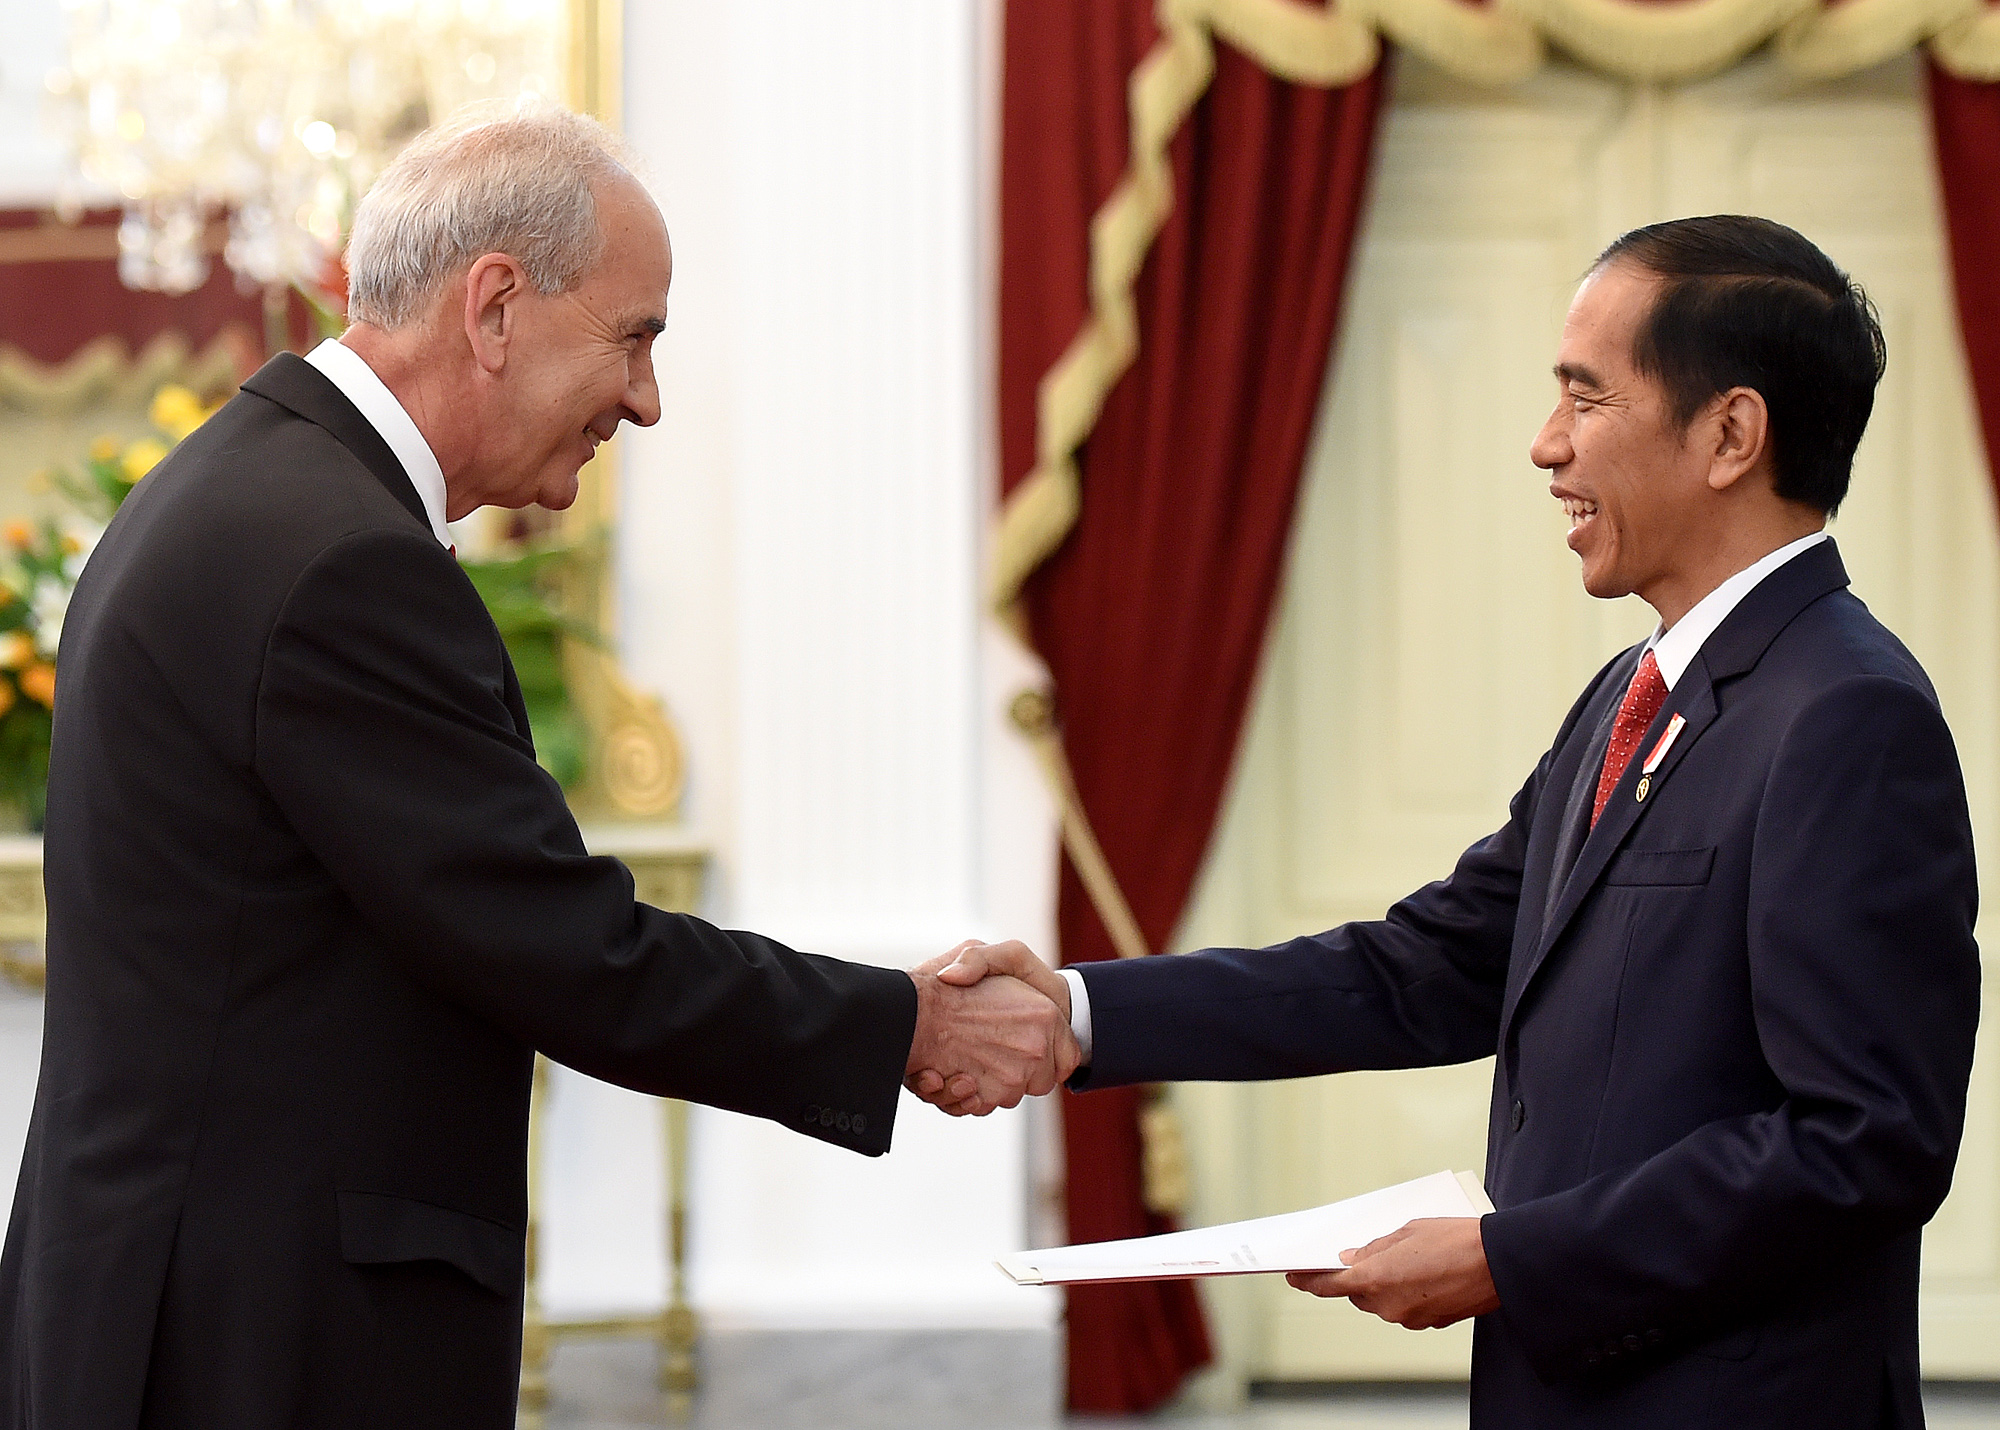 Embassy of the republic of serbia in the republic of indonesia ambassador of the republic of serbia to the republic of indonesia slobodan marinkovic presented his credentials to the president of the republic of m4hsunfo